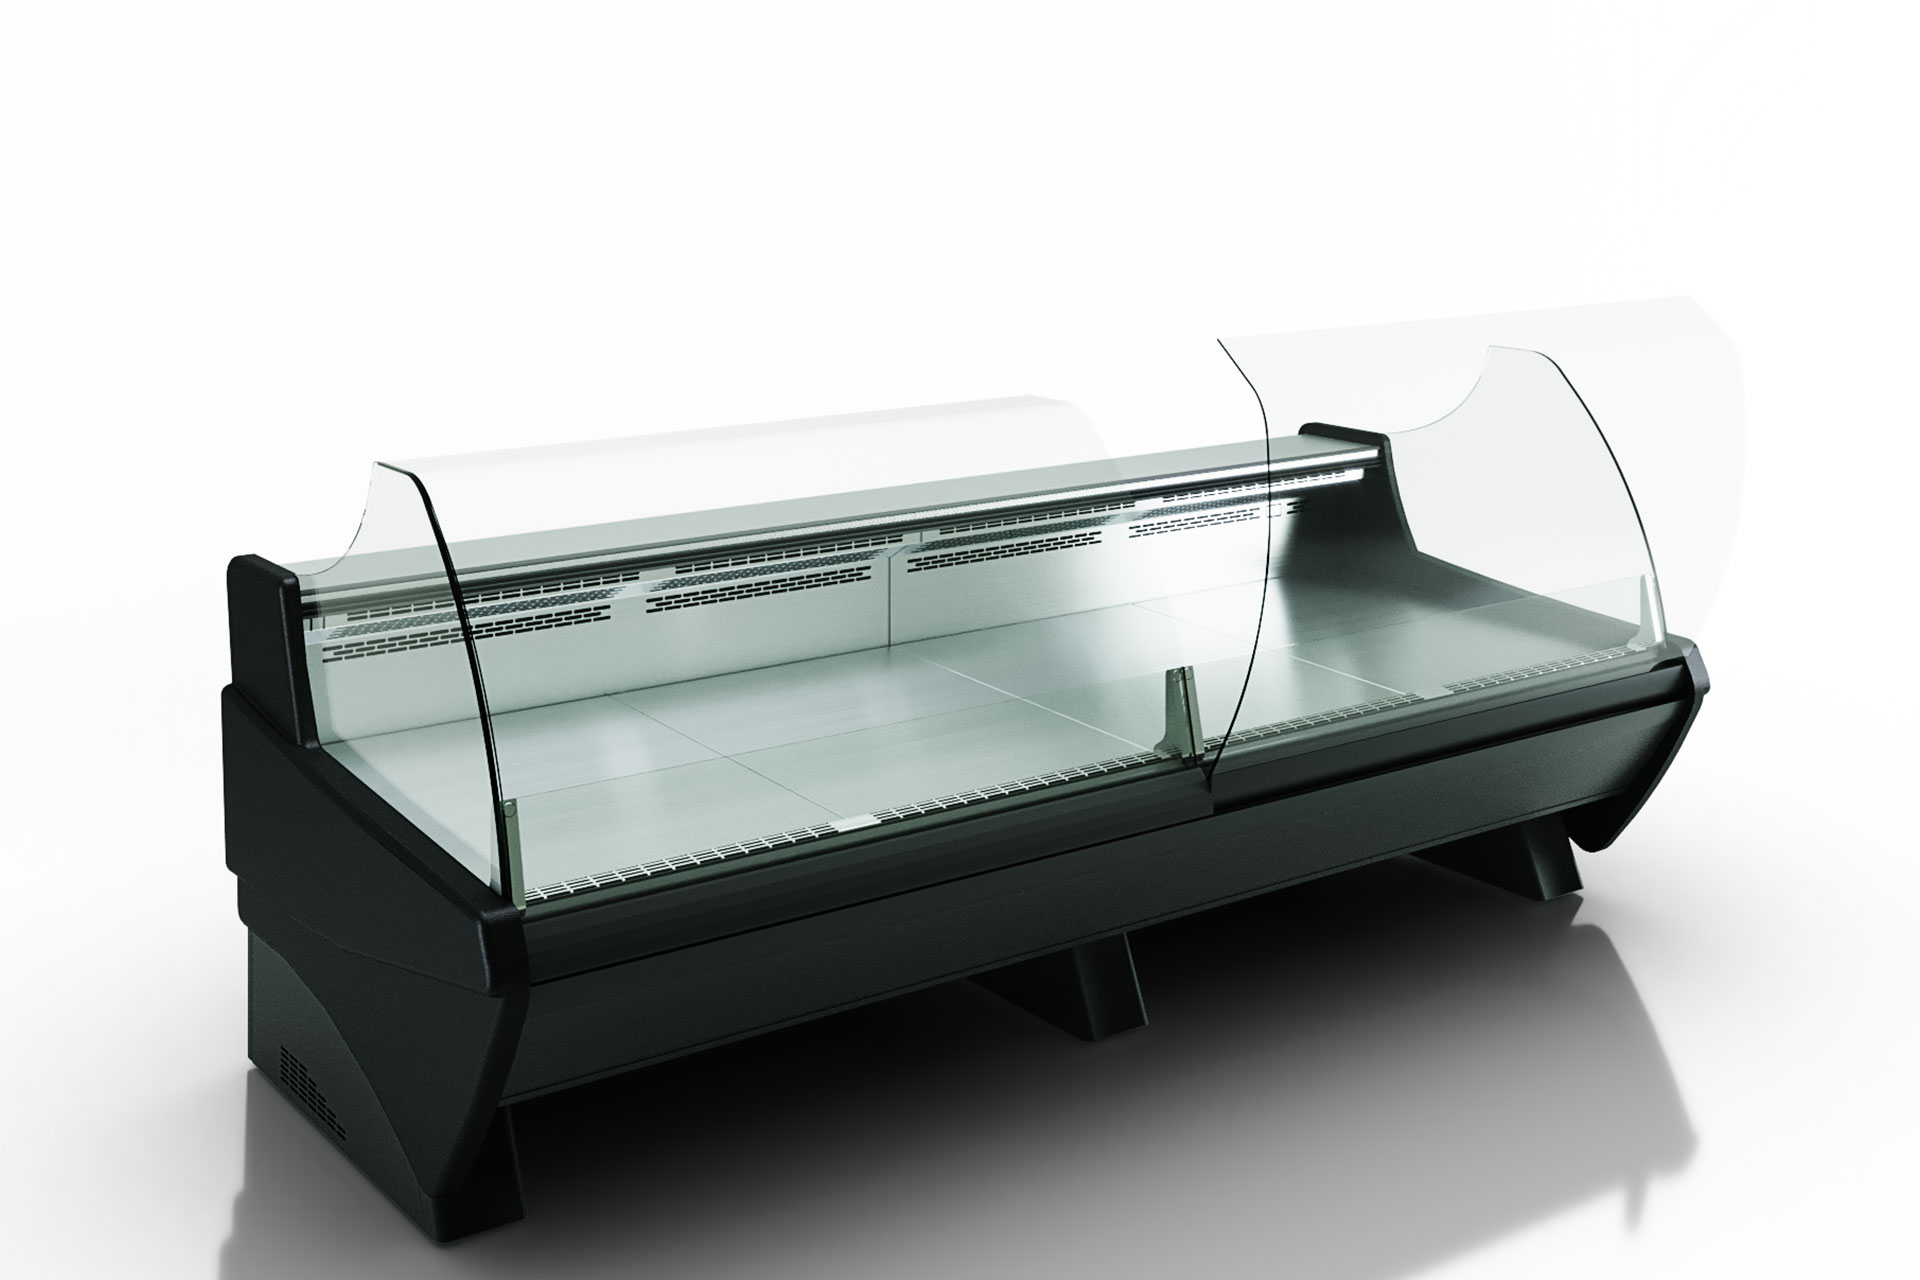 Counter Symphony luxe MG 100 deli T 110-DLM